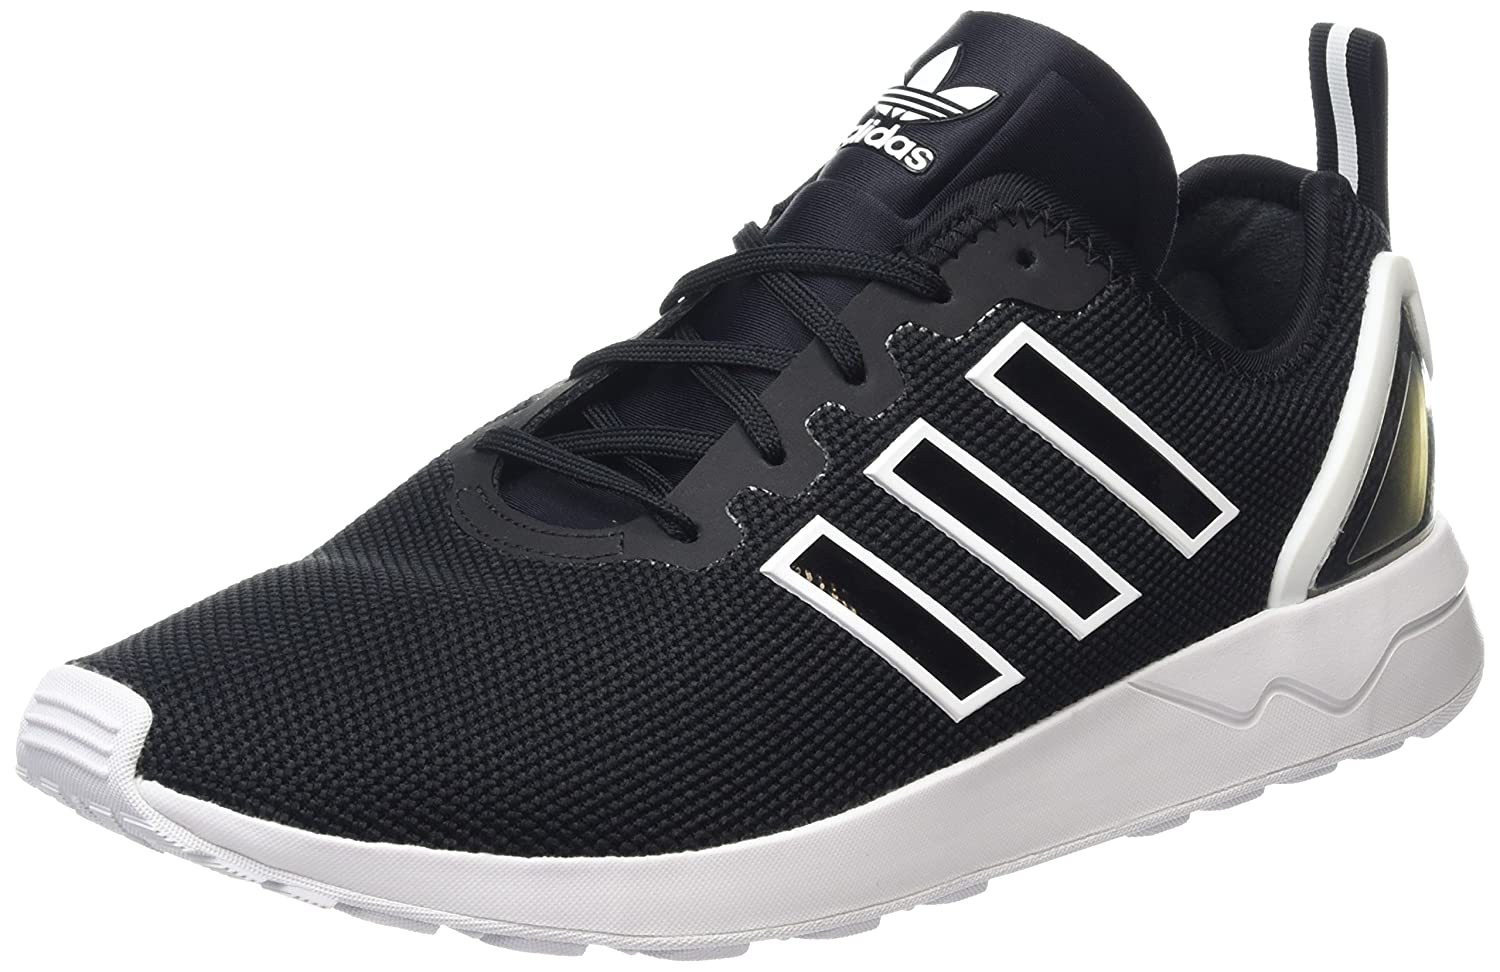 Adidas VS Set, Zapatillas para Hombre, Negro (Core Black/FTWR White/FTWR White 0), 47 1/3 EU amazon-shoes el-negro Cordones